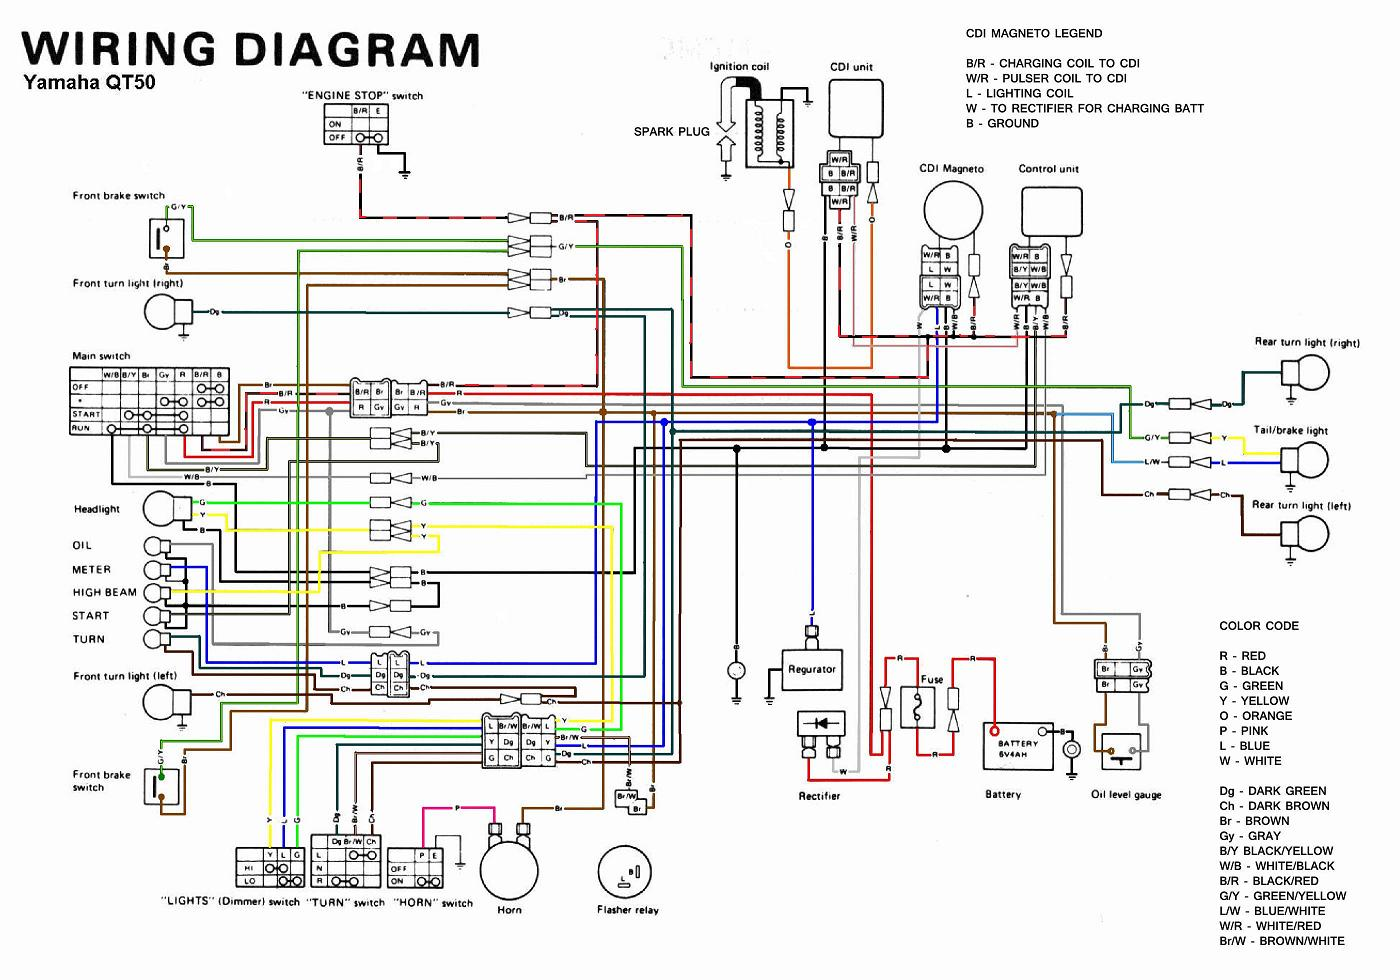 Qt50 Moped Wiring Diagram - Wiring Diagram Schematic Name on